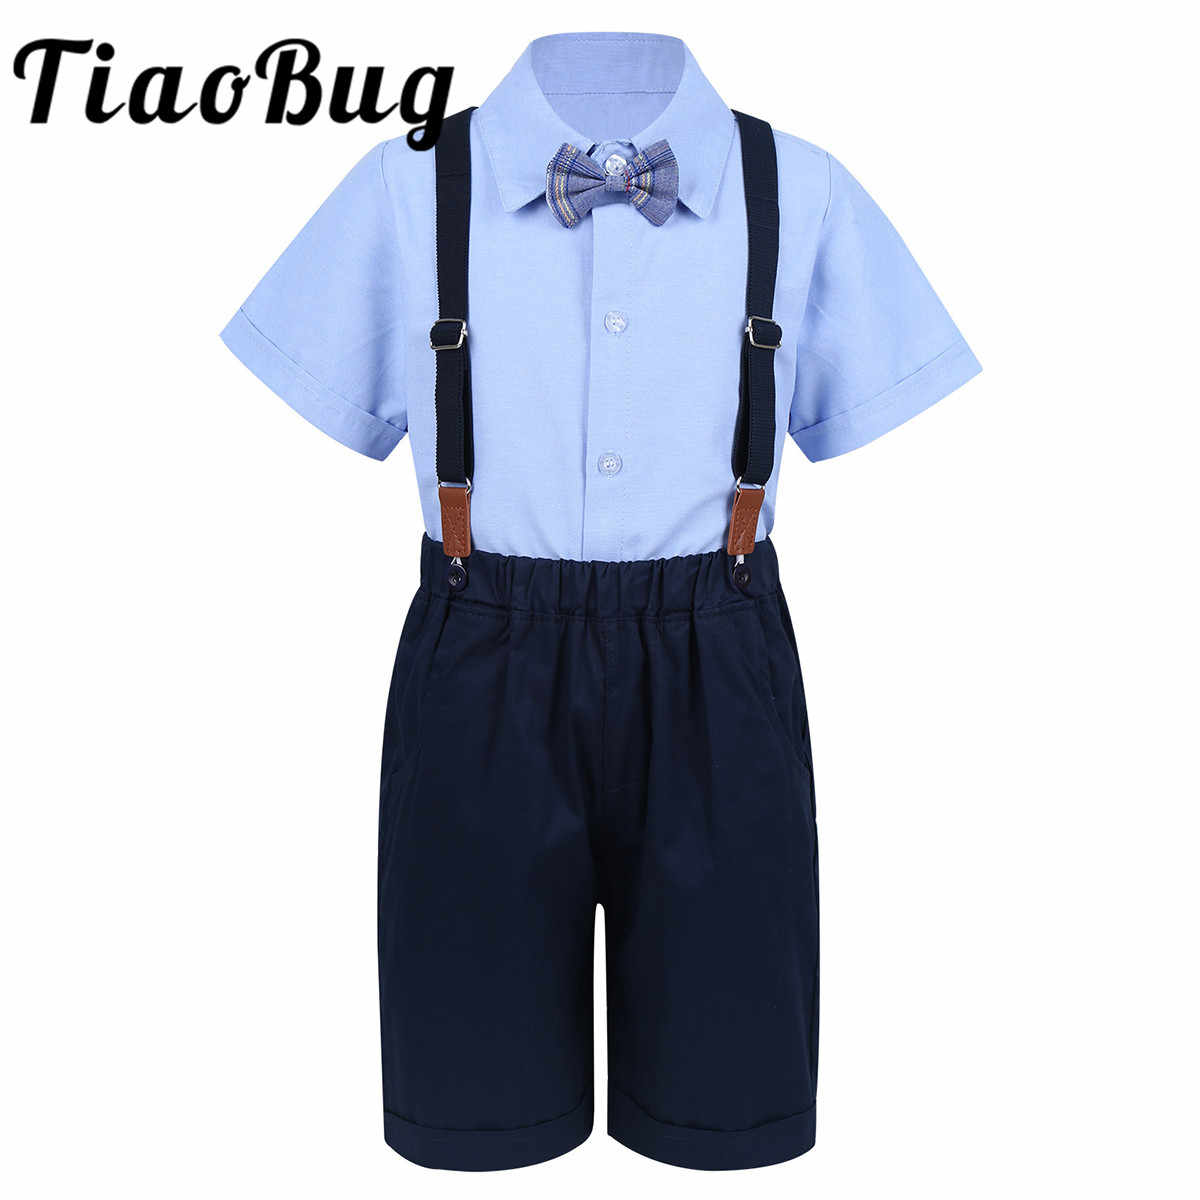 Flower Boys Wedding Suits Kids Groom Tuxedos Children Suits Party 4pcs Suits Boys Gentleman Outfit Lapel Shirt Tops with Bowtie